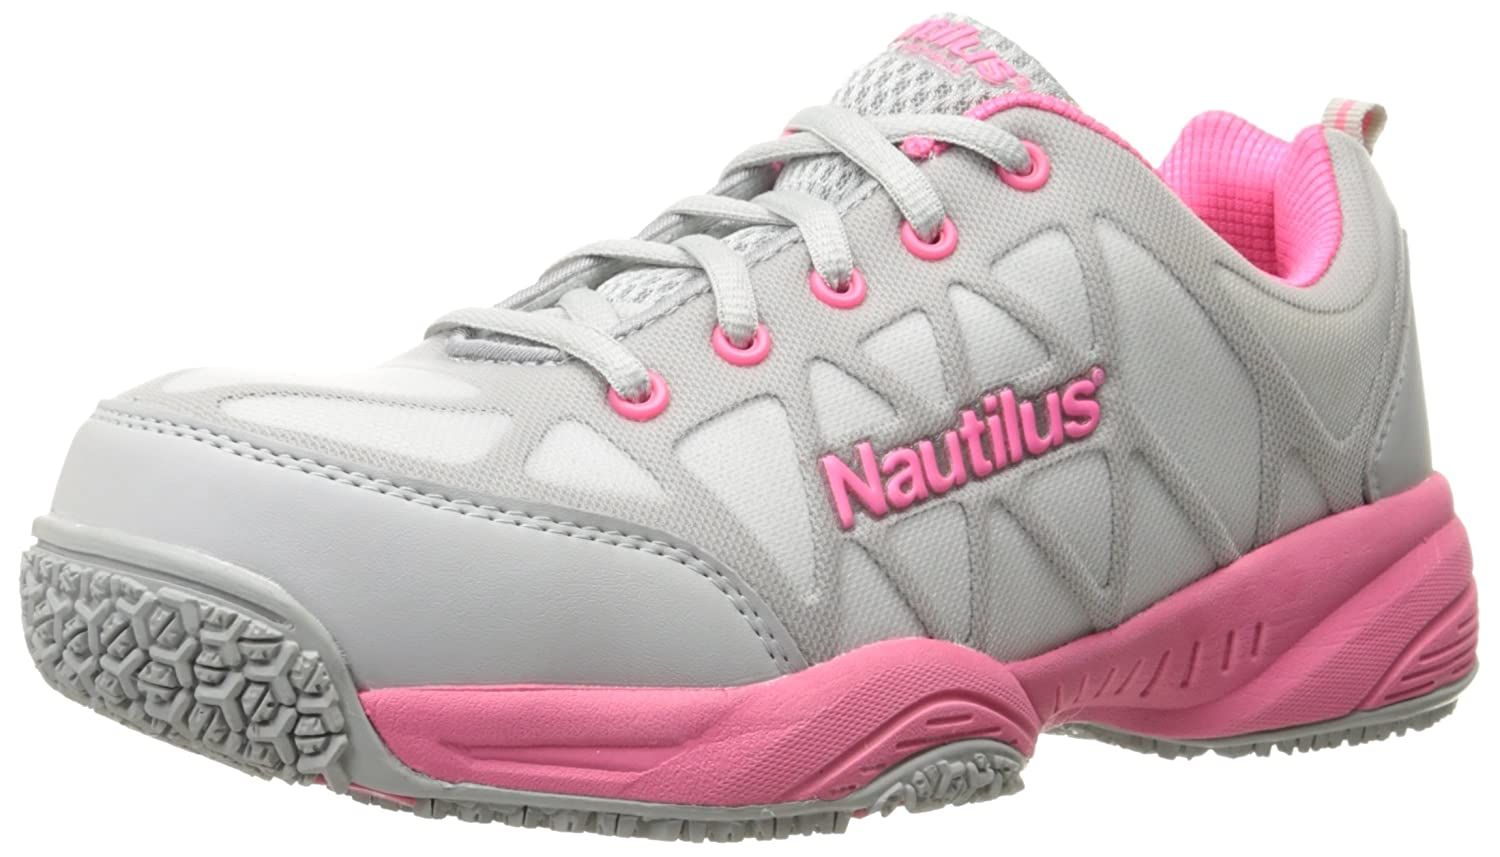 Nautilus Safety Footwear レディース B076JHZBFR 7 B(M) US|ブラック ブラック 7 B(M) US